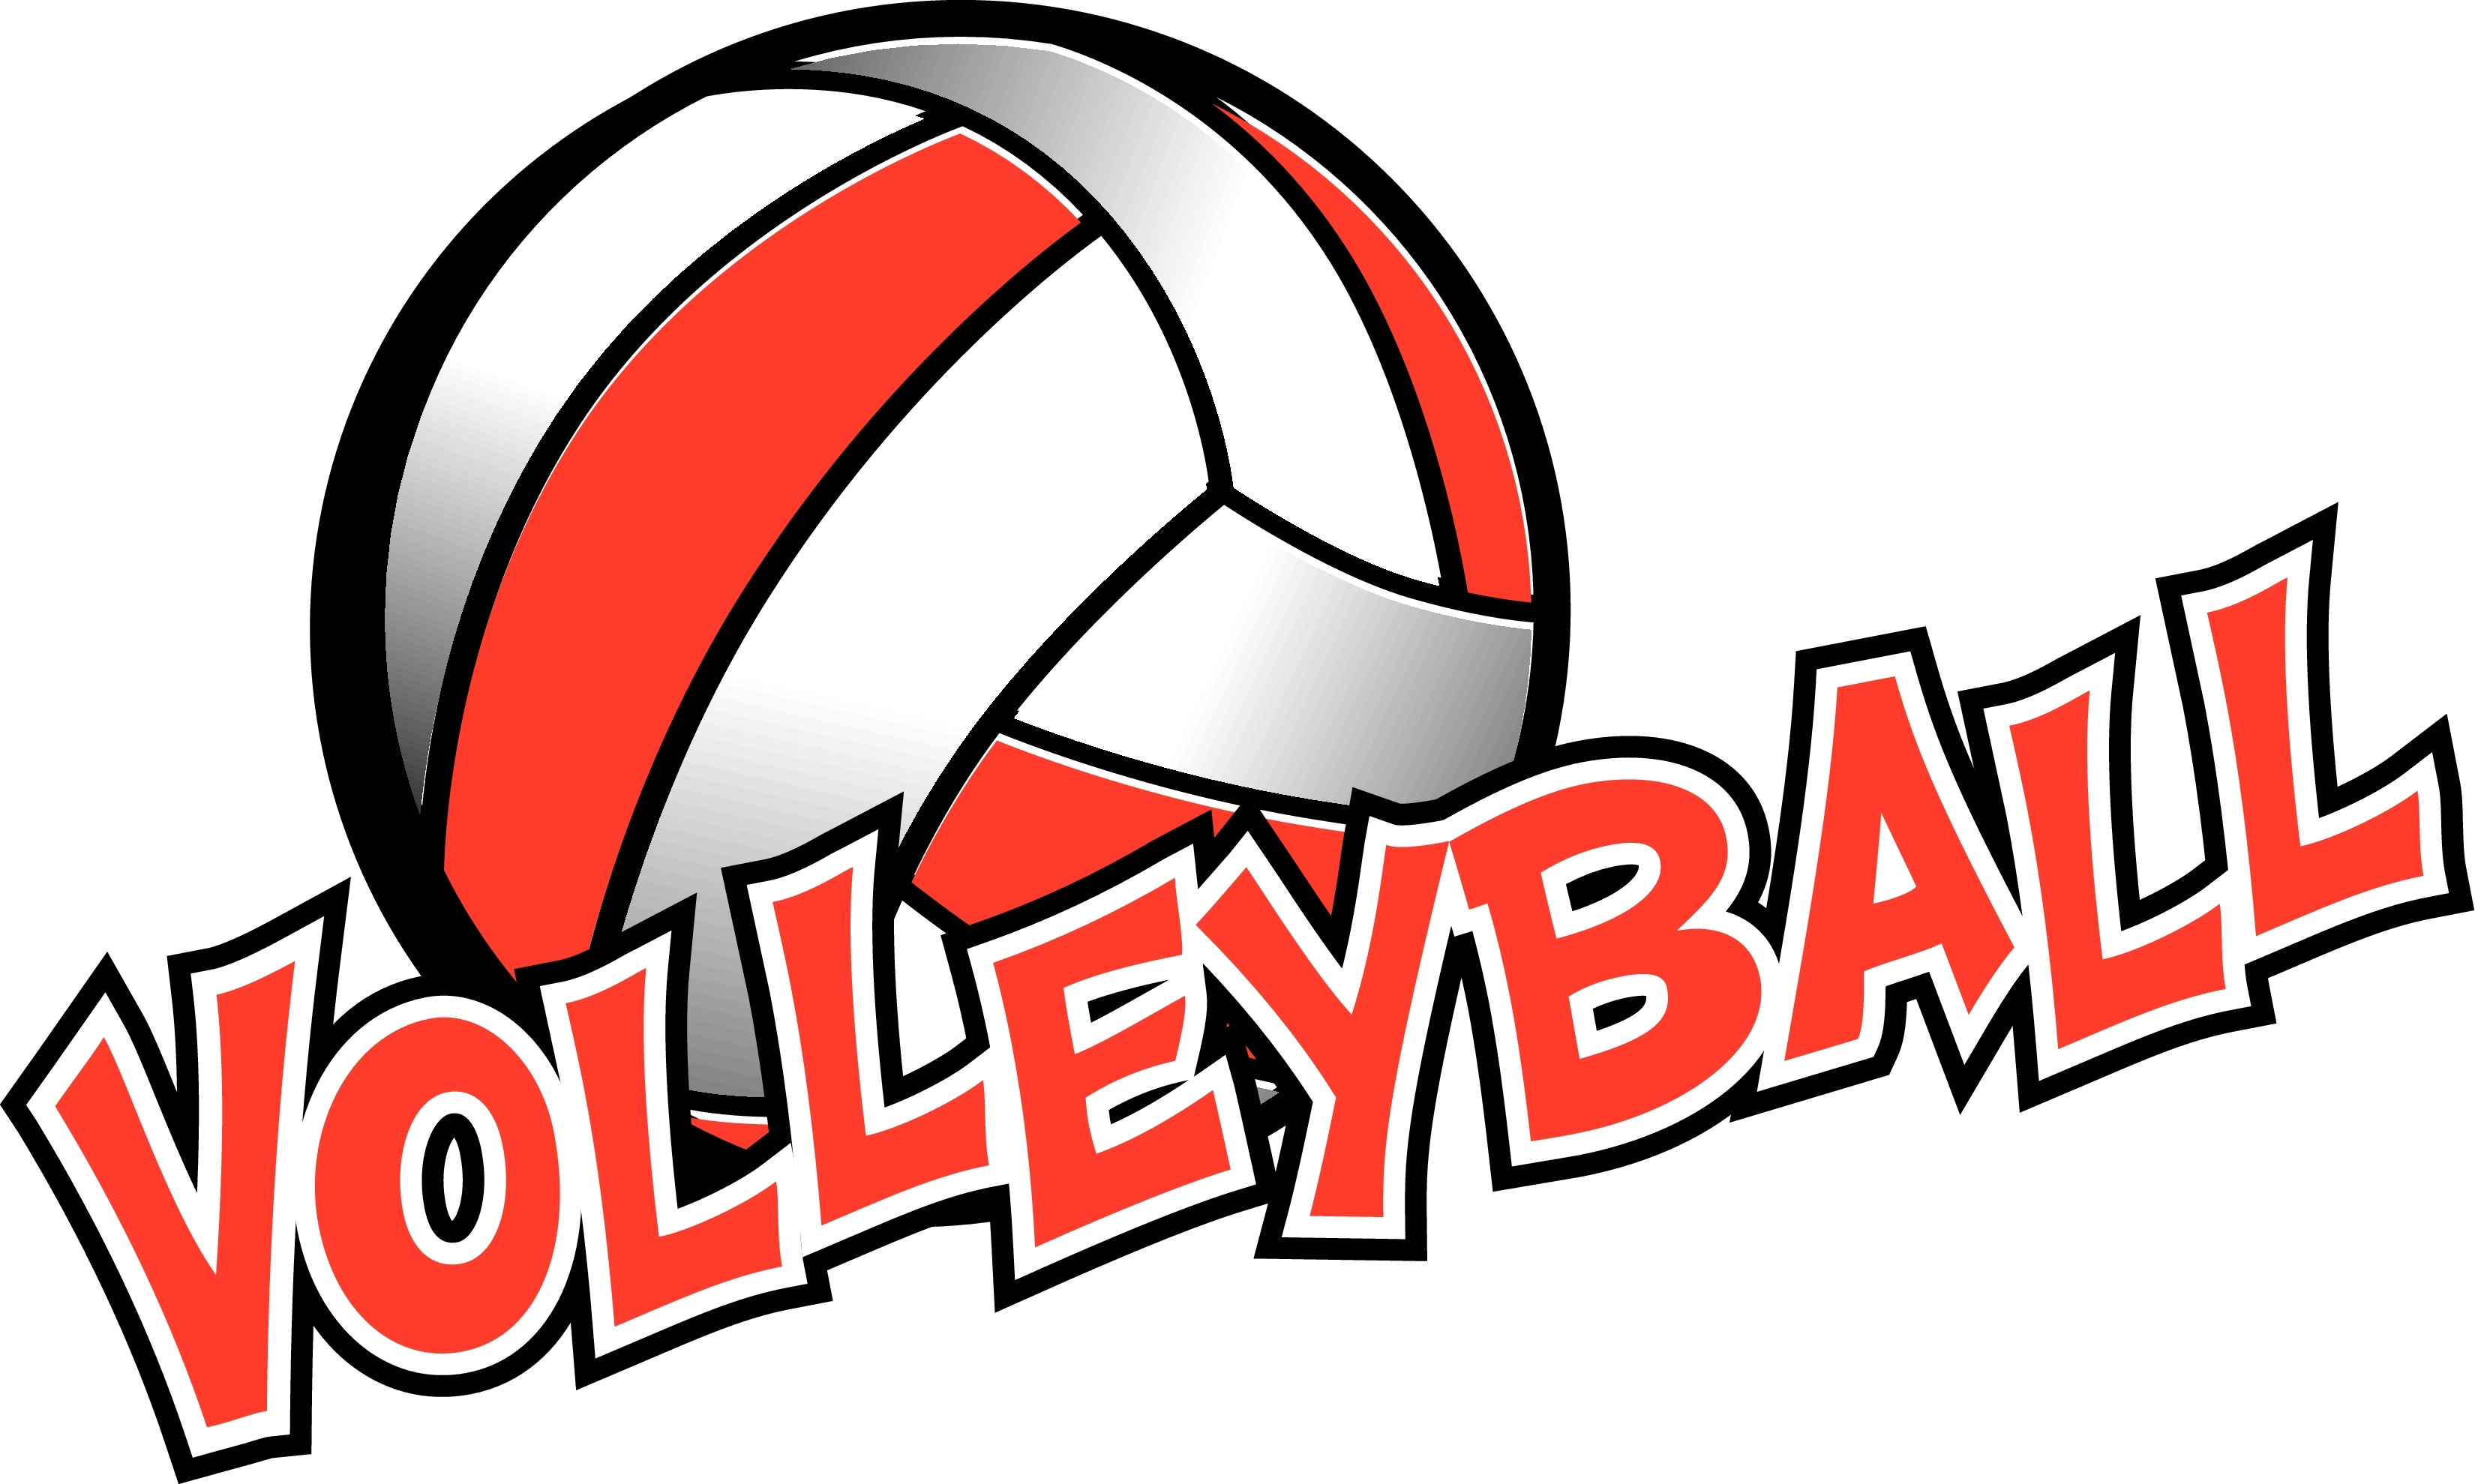 red and white volleyball clipart hobbs daily report rh hobbsdailyreport com volleyball clipart images volley ball player clipart